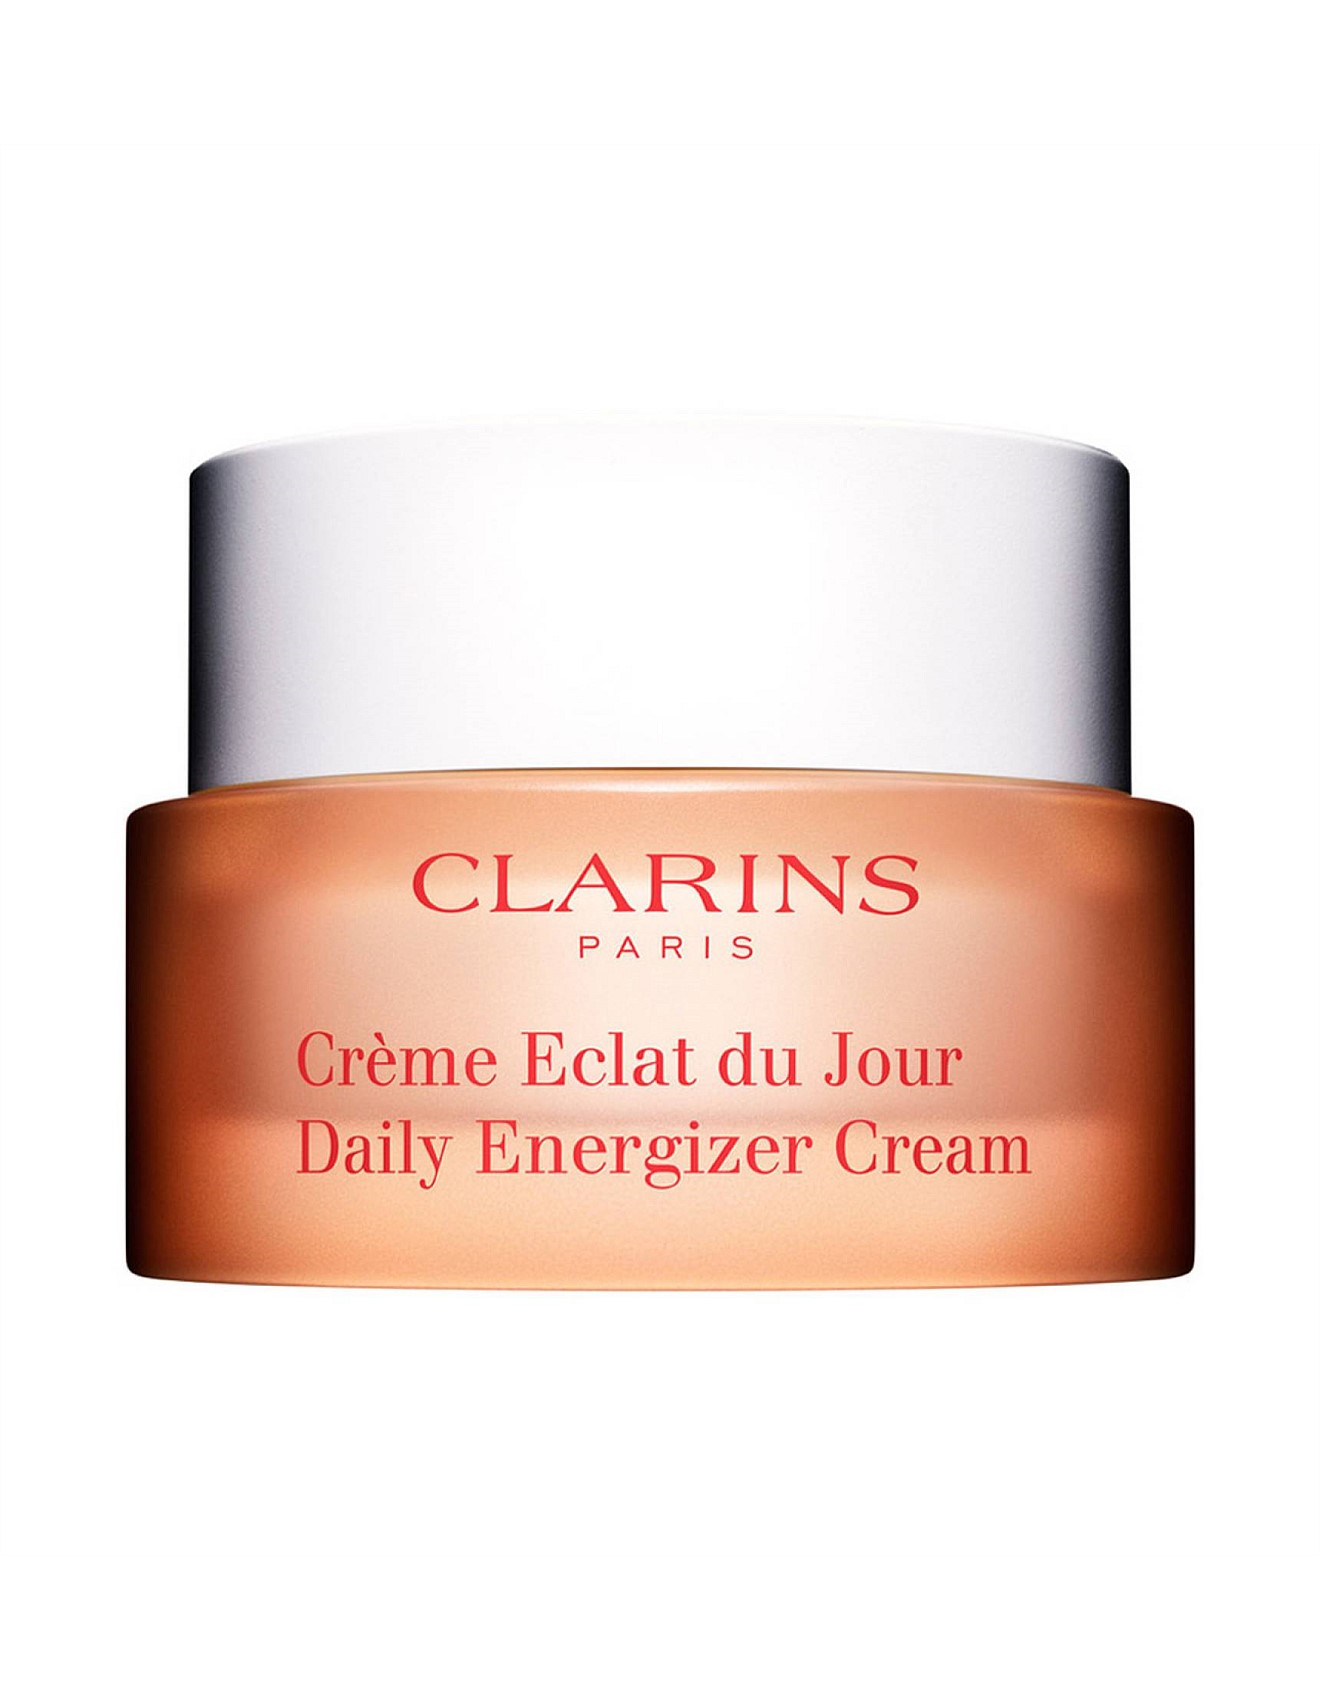 clarins daily energizer cream review